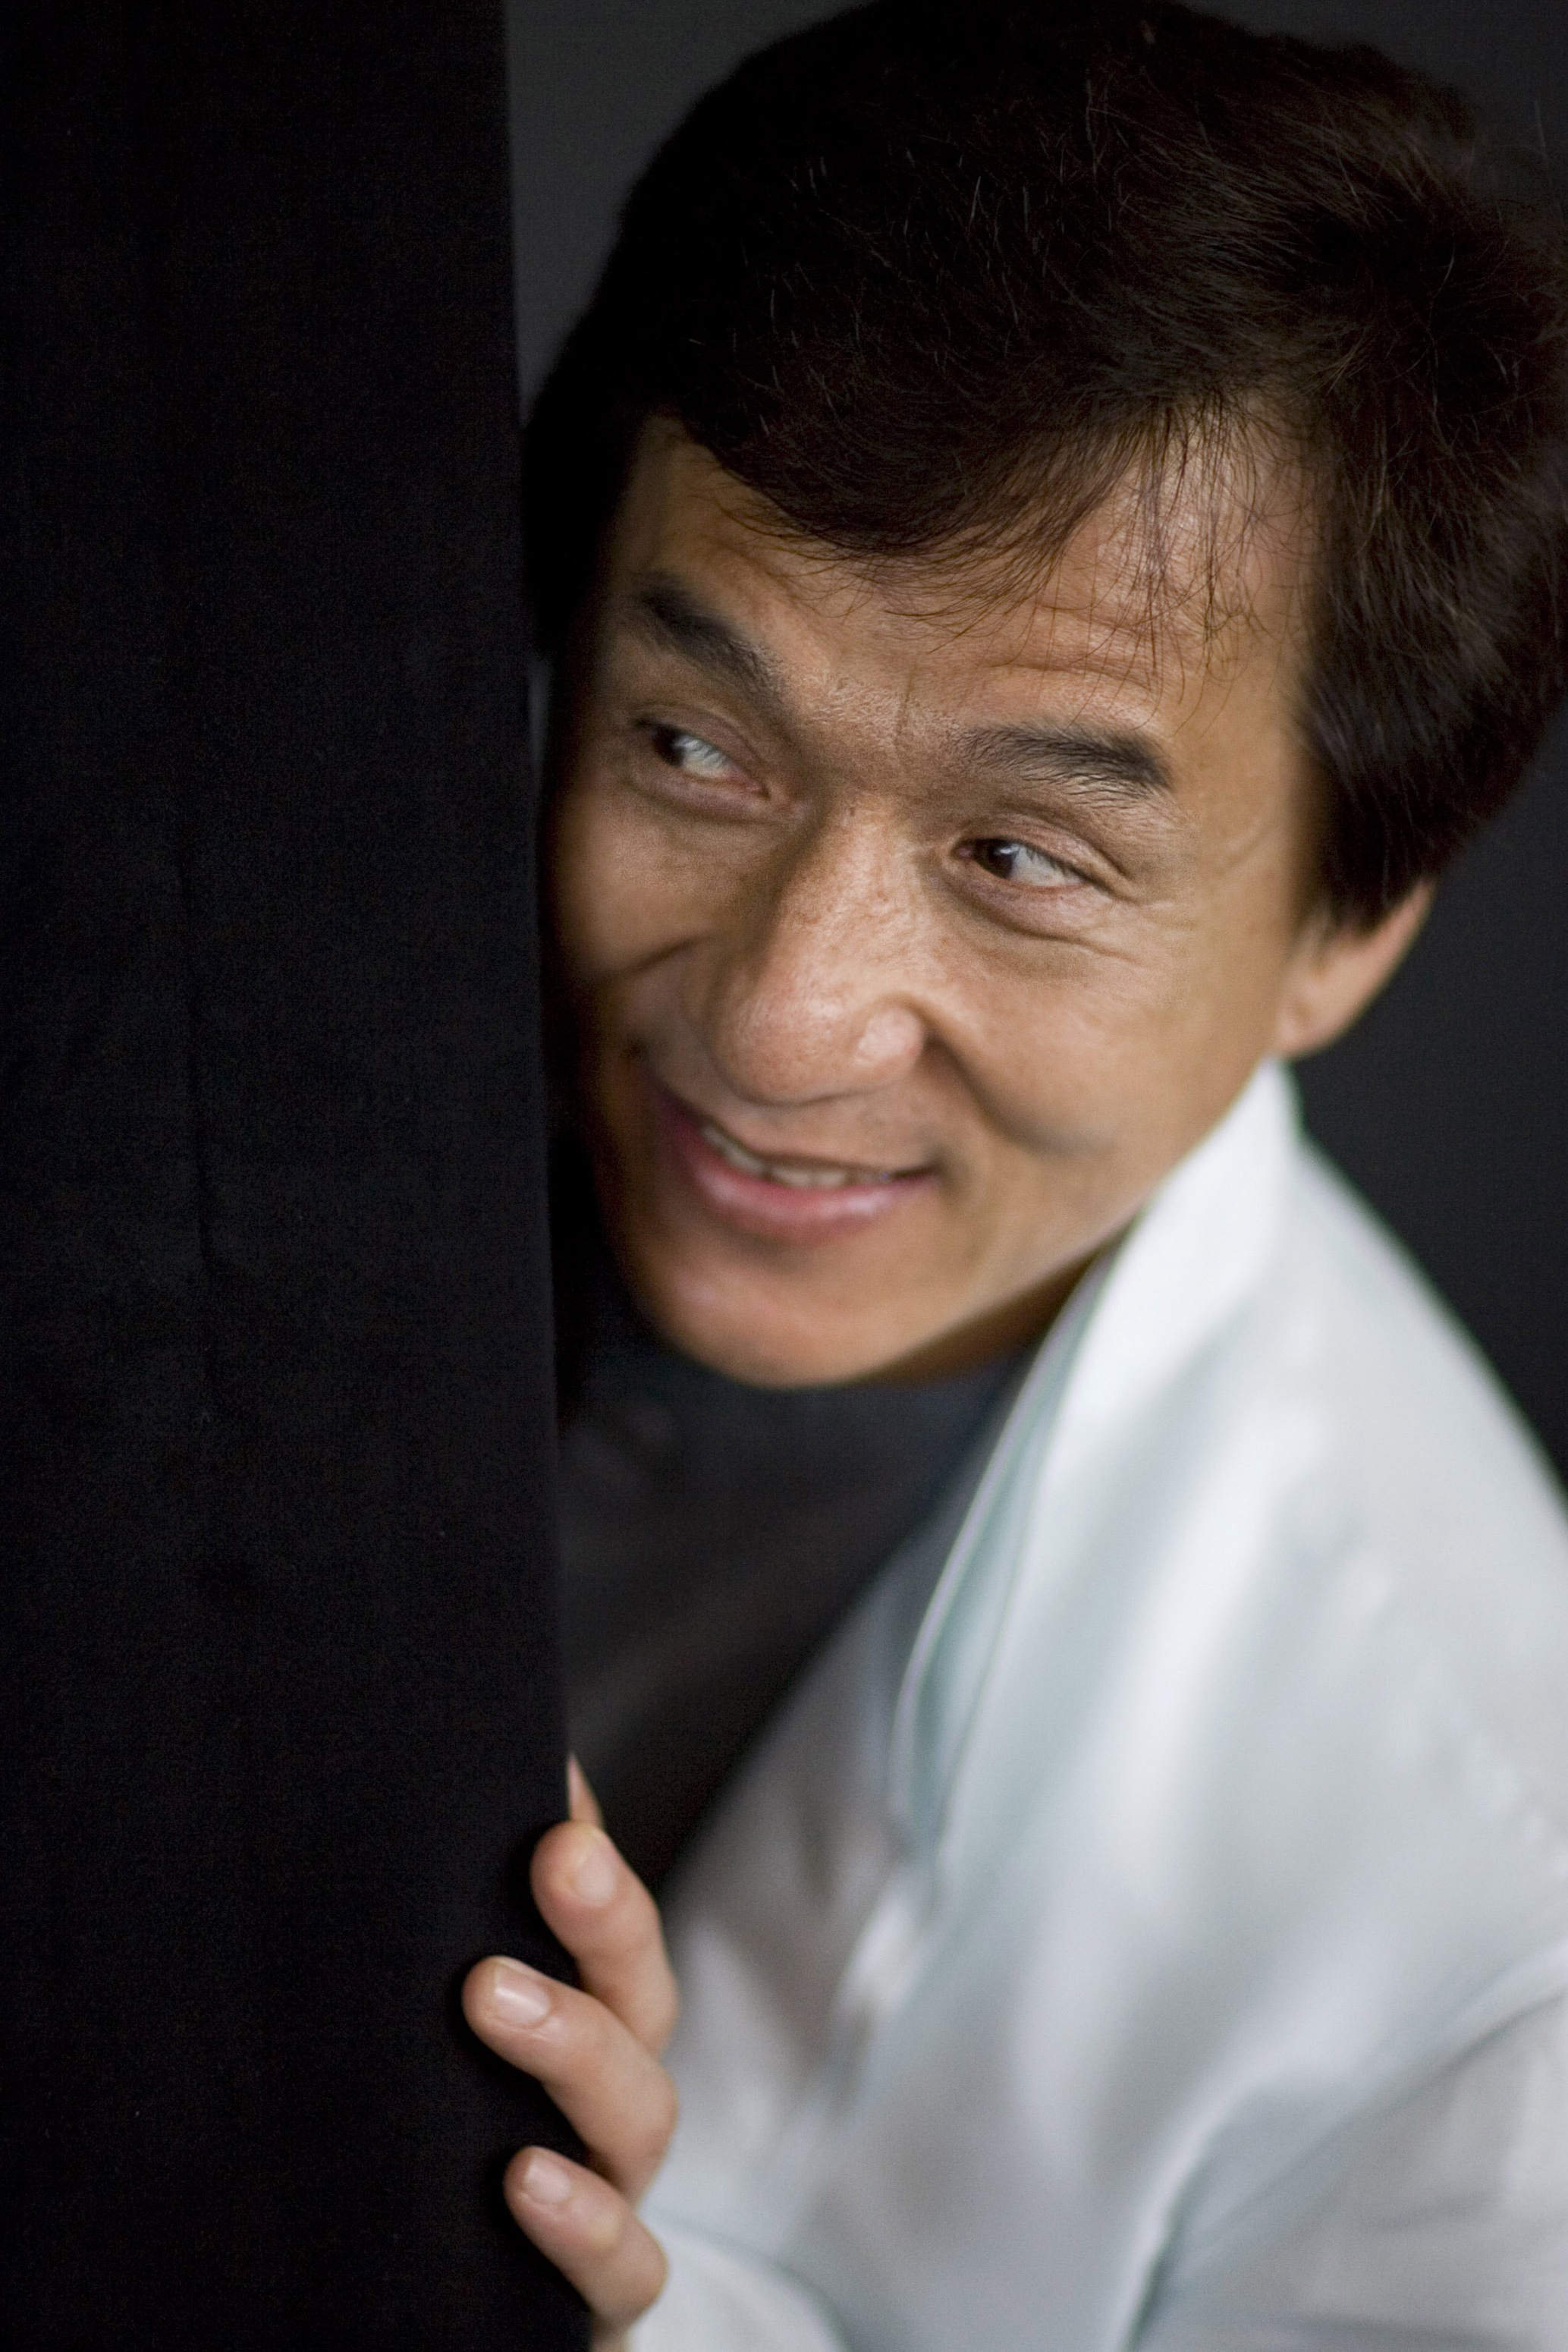 celebrity photo jackie chan jackie chan photo 127392 0 vote